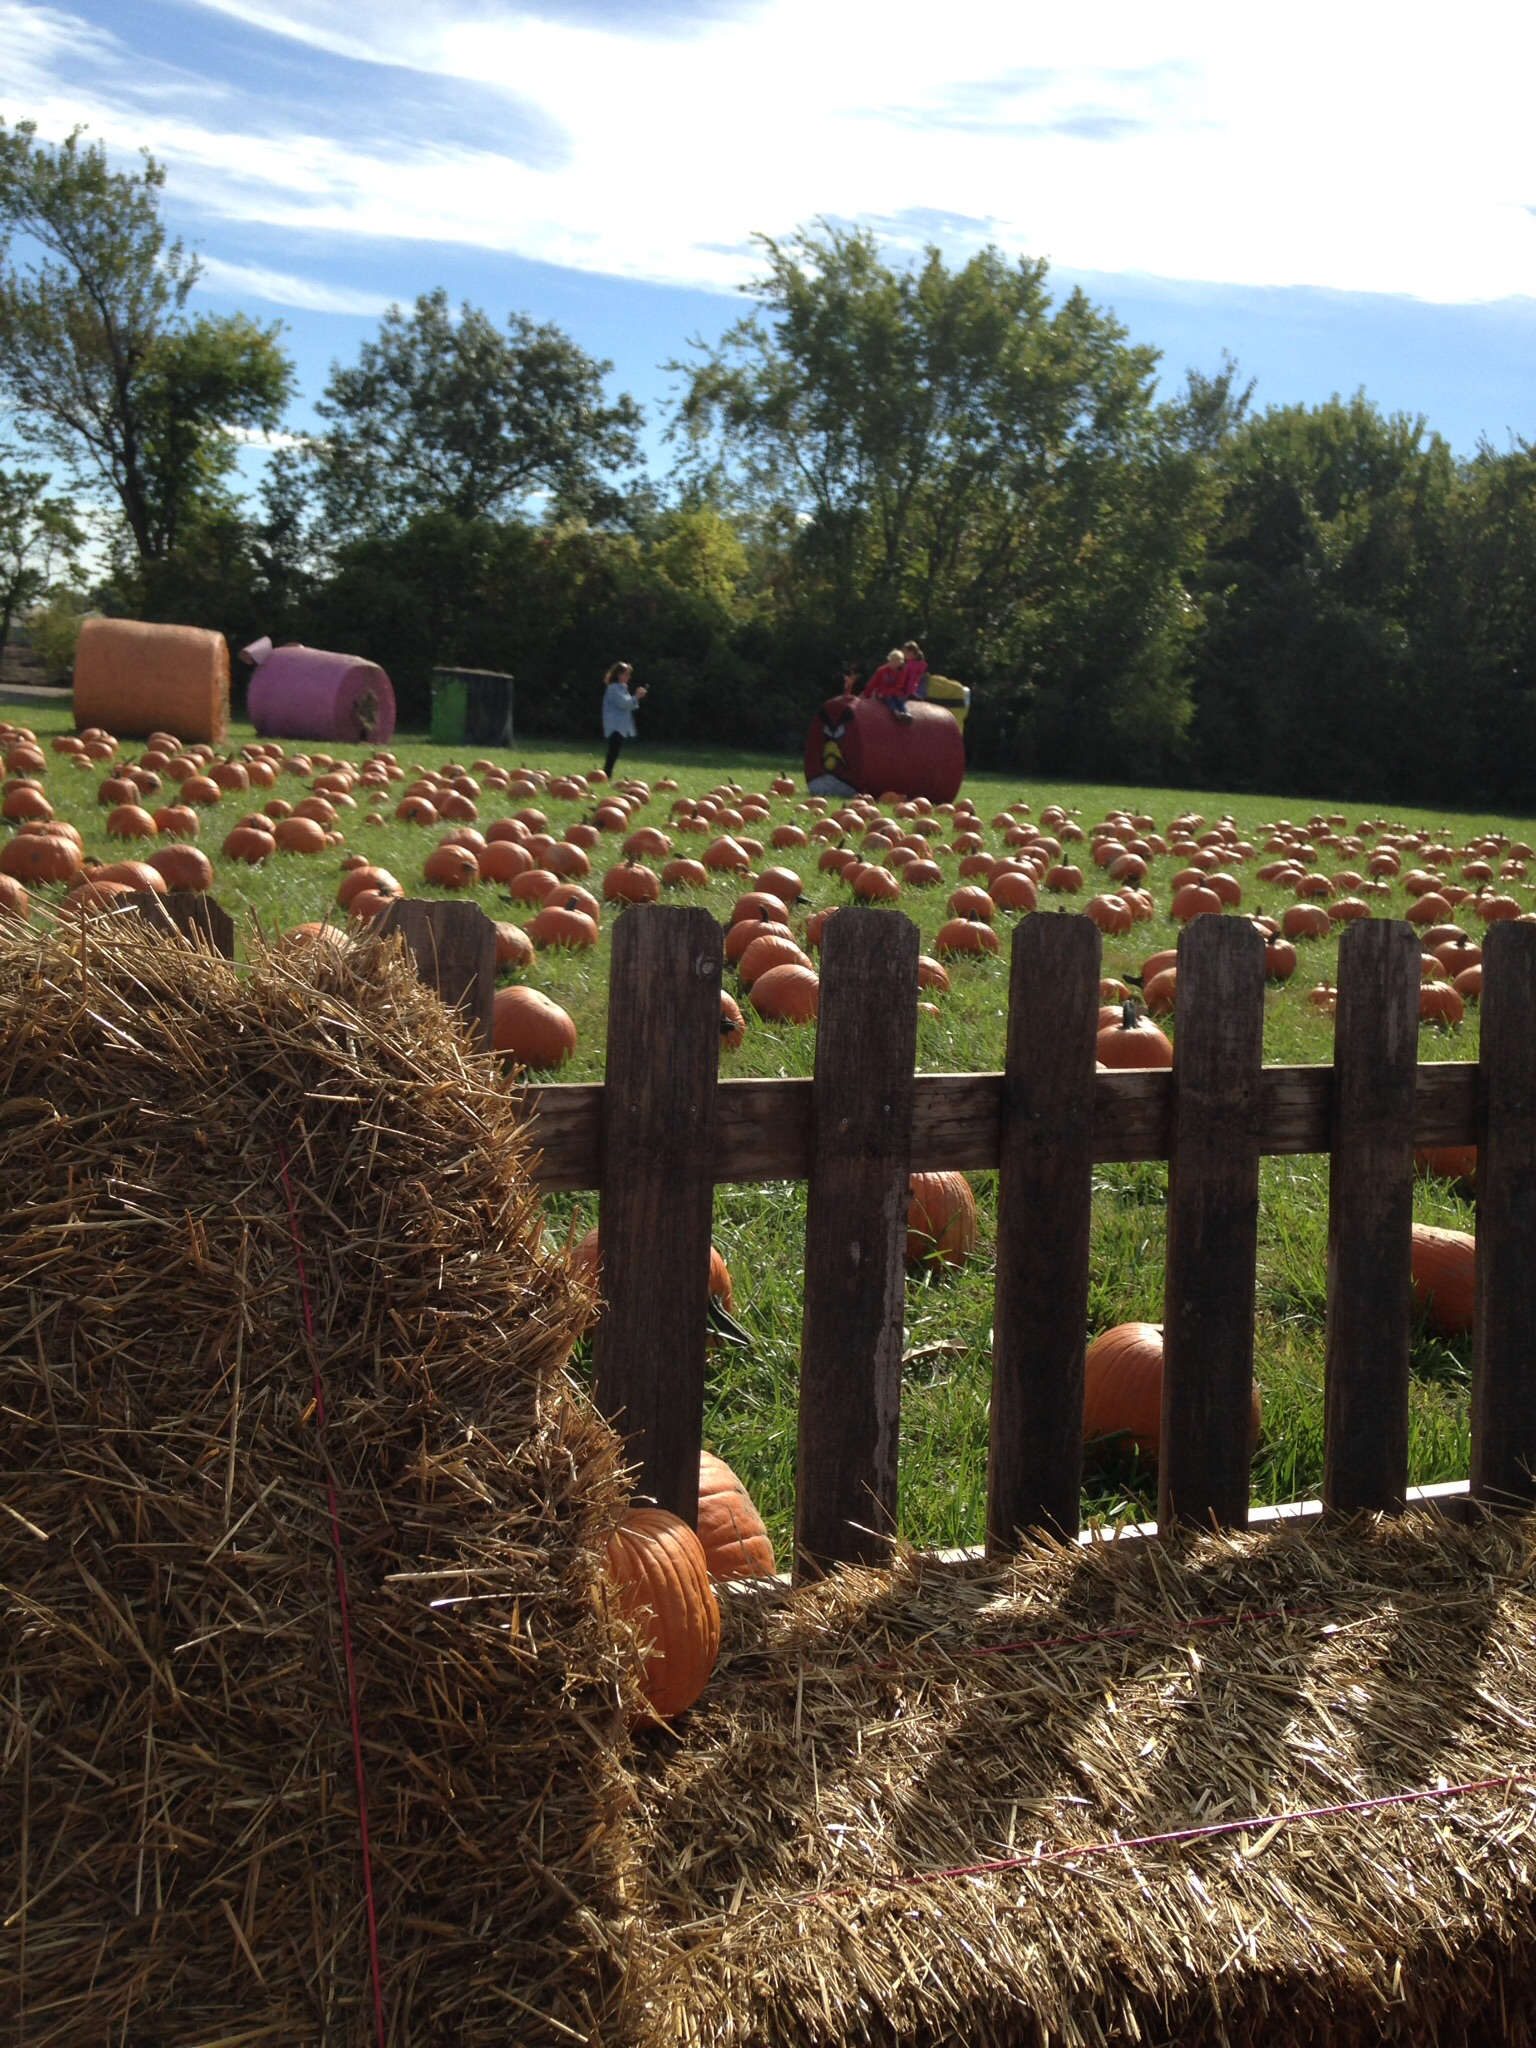 Pumpkin Patch at Suburban Lawn & Garden | Peanut and Phouka\'s Adventures